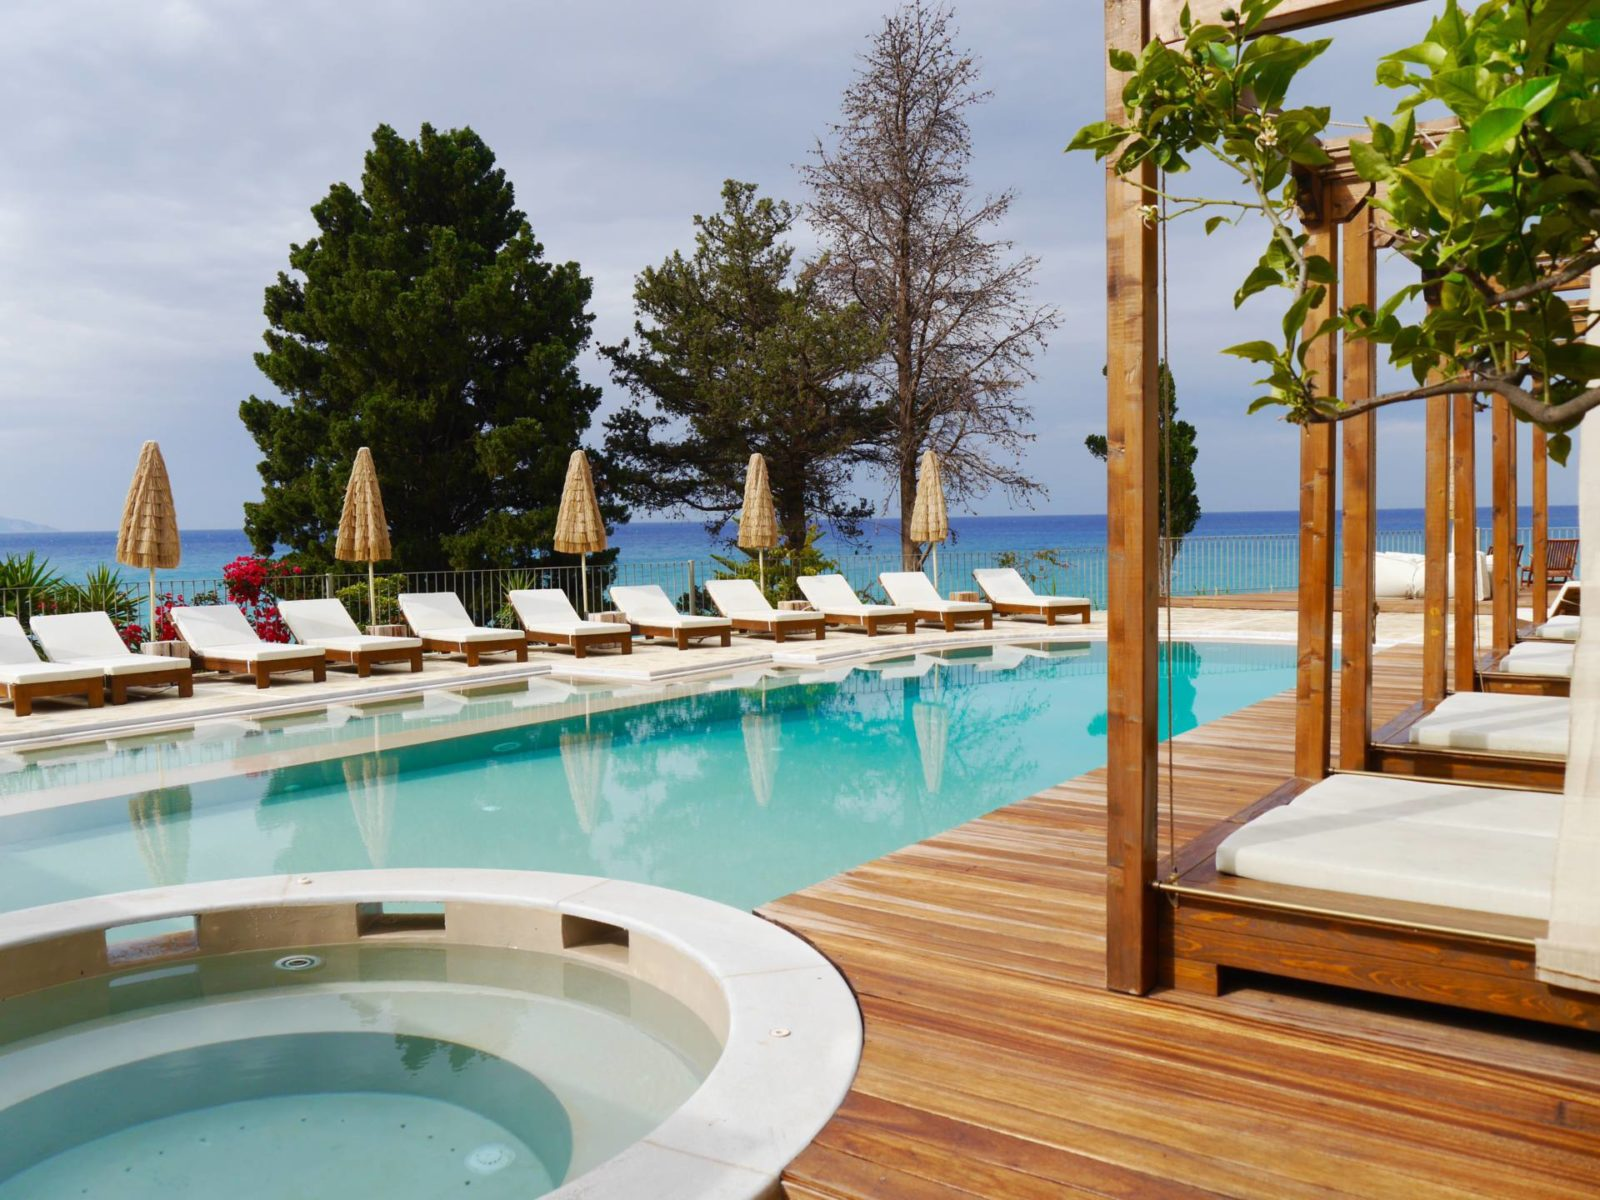 f-zeen-retreat-kefalonia20